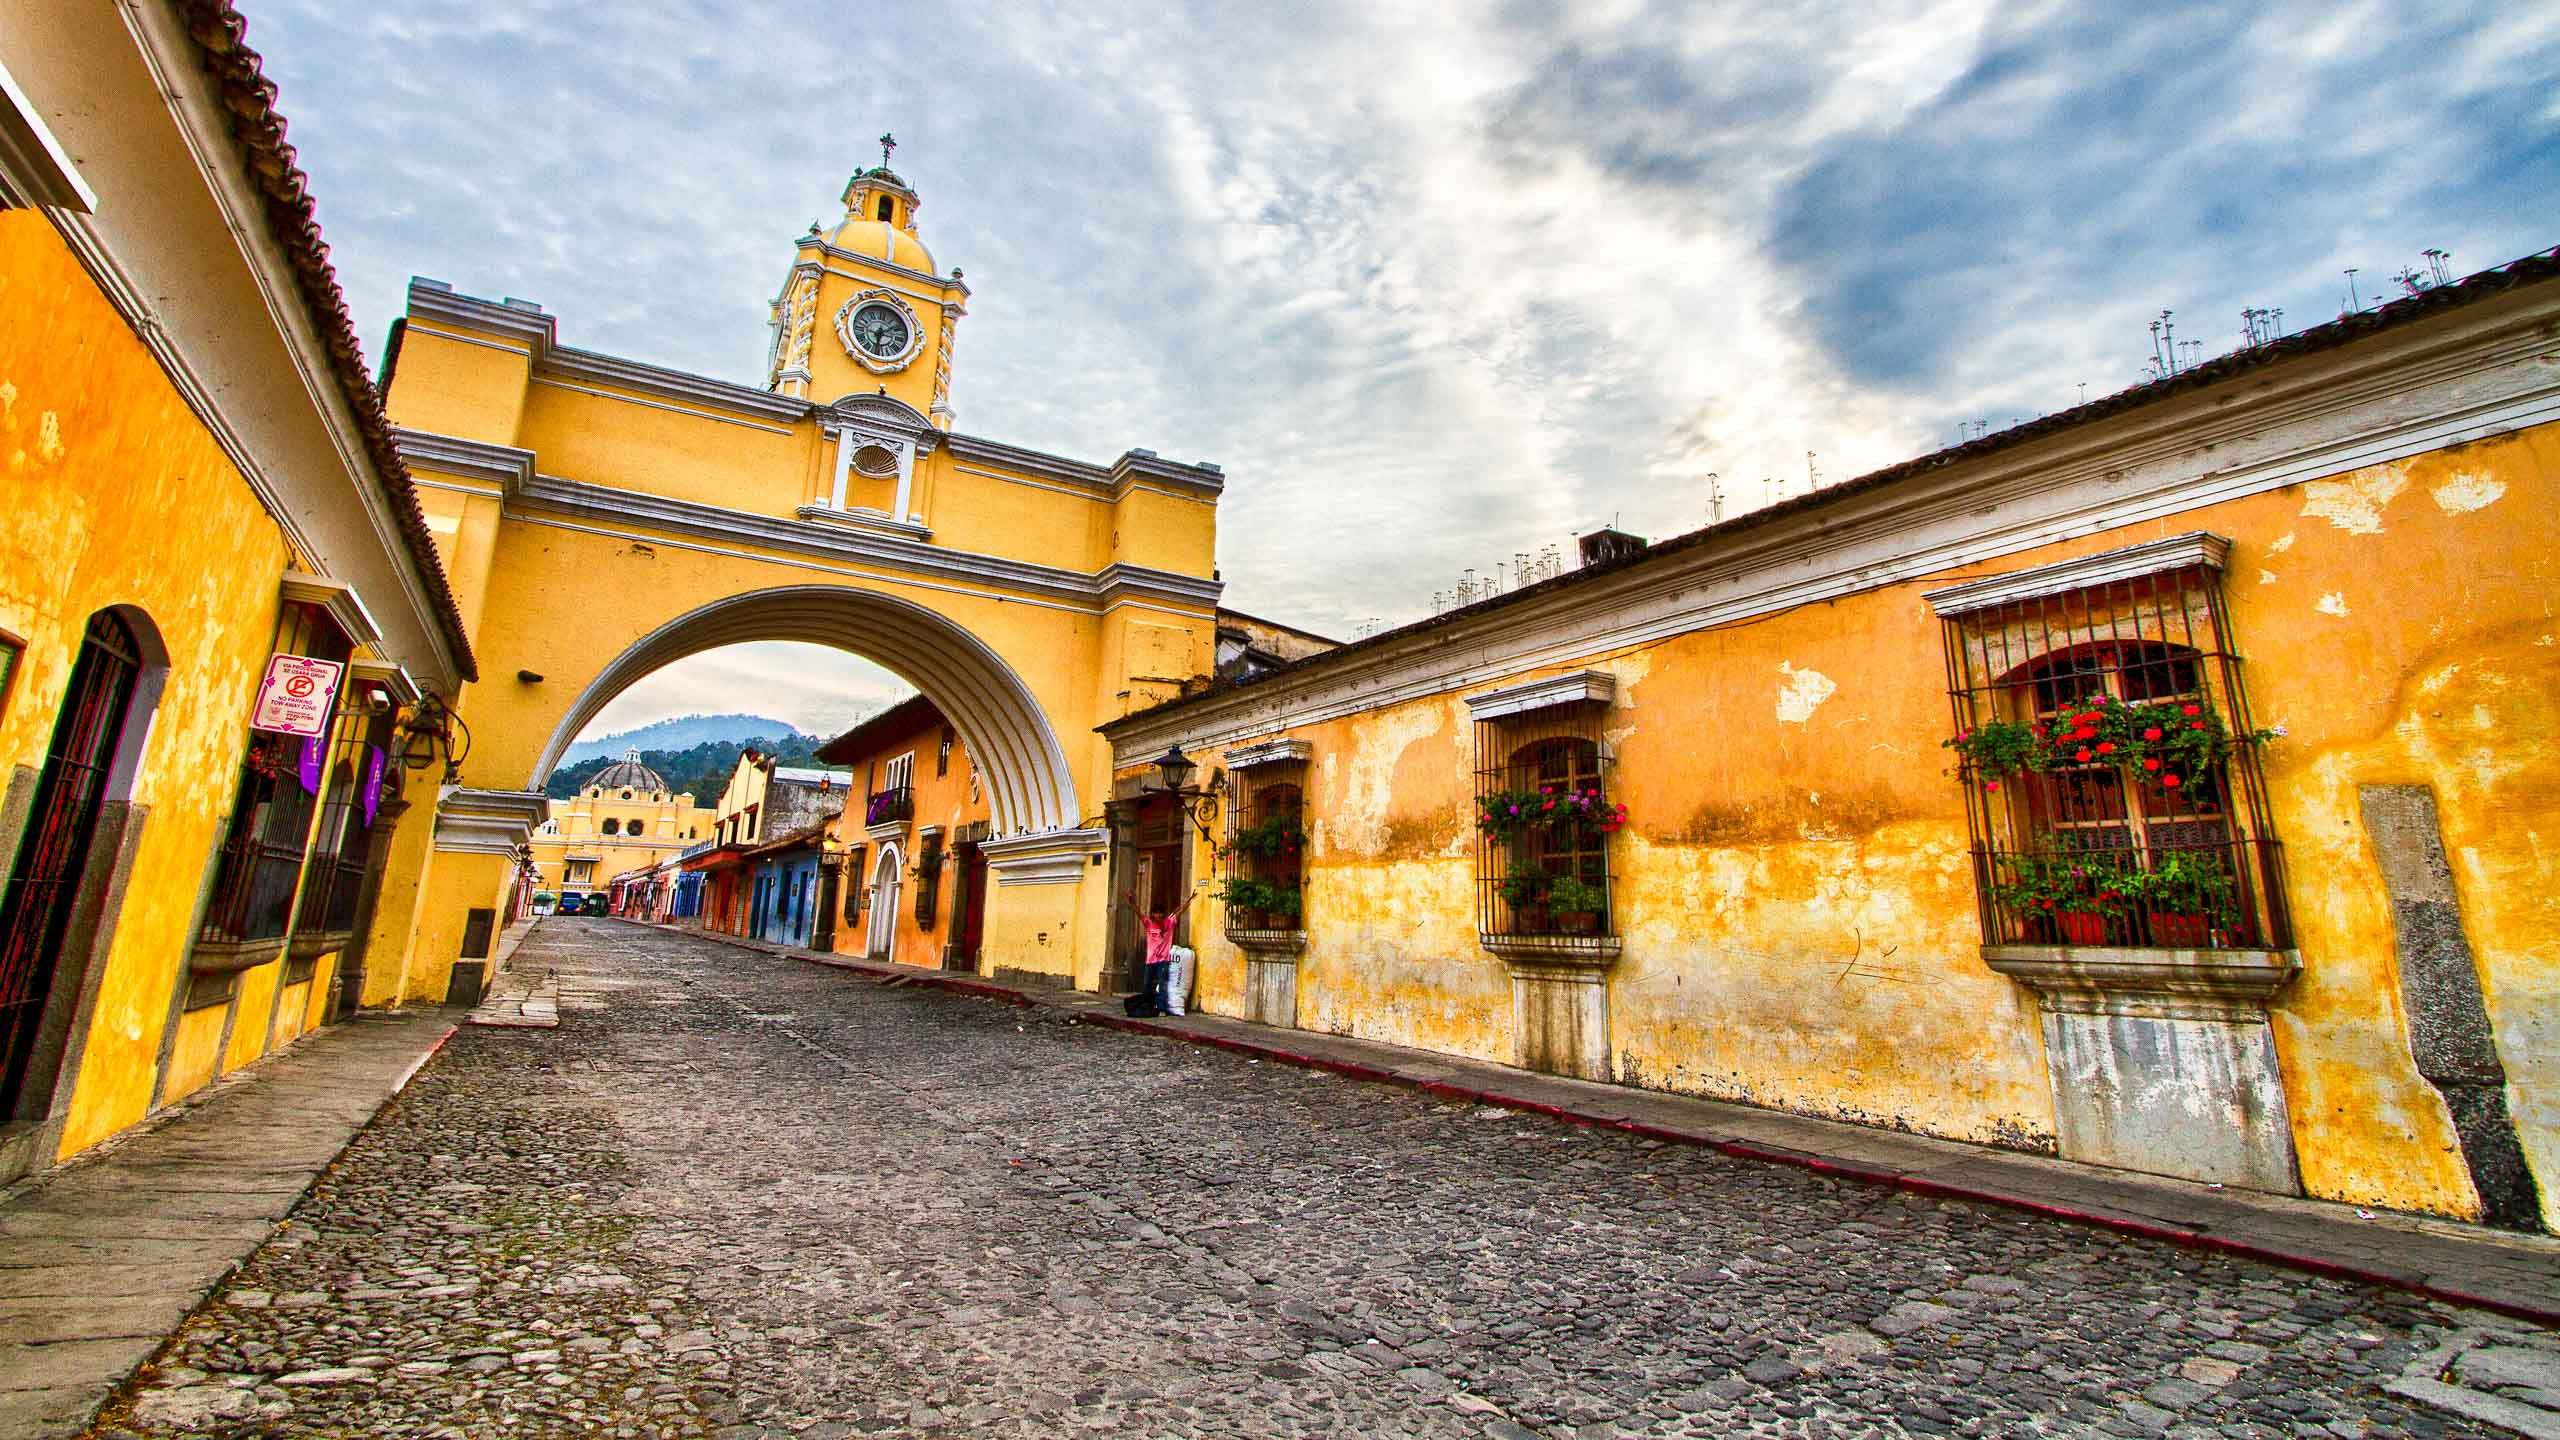 Guatemalan street with archway